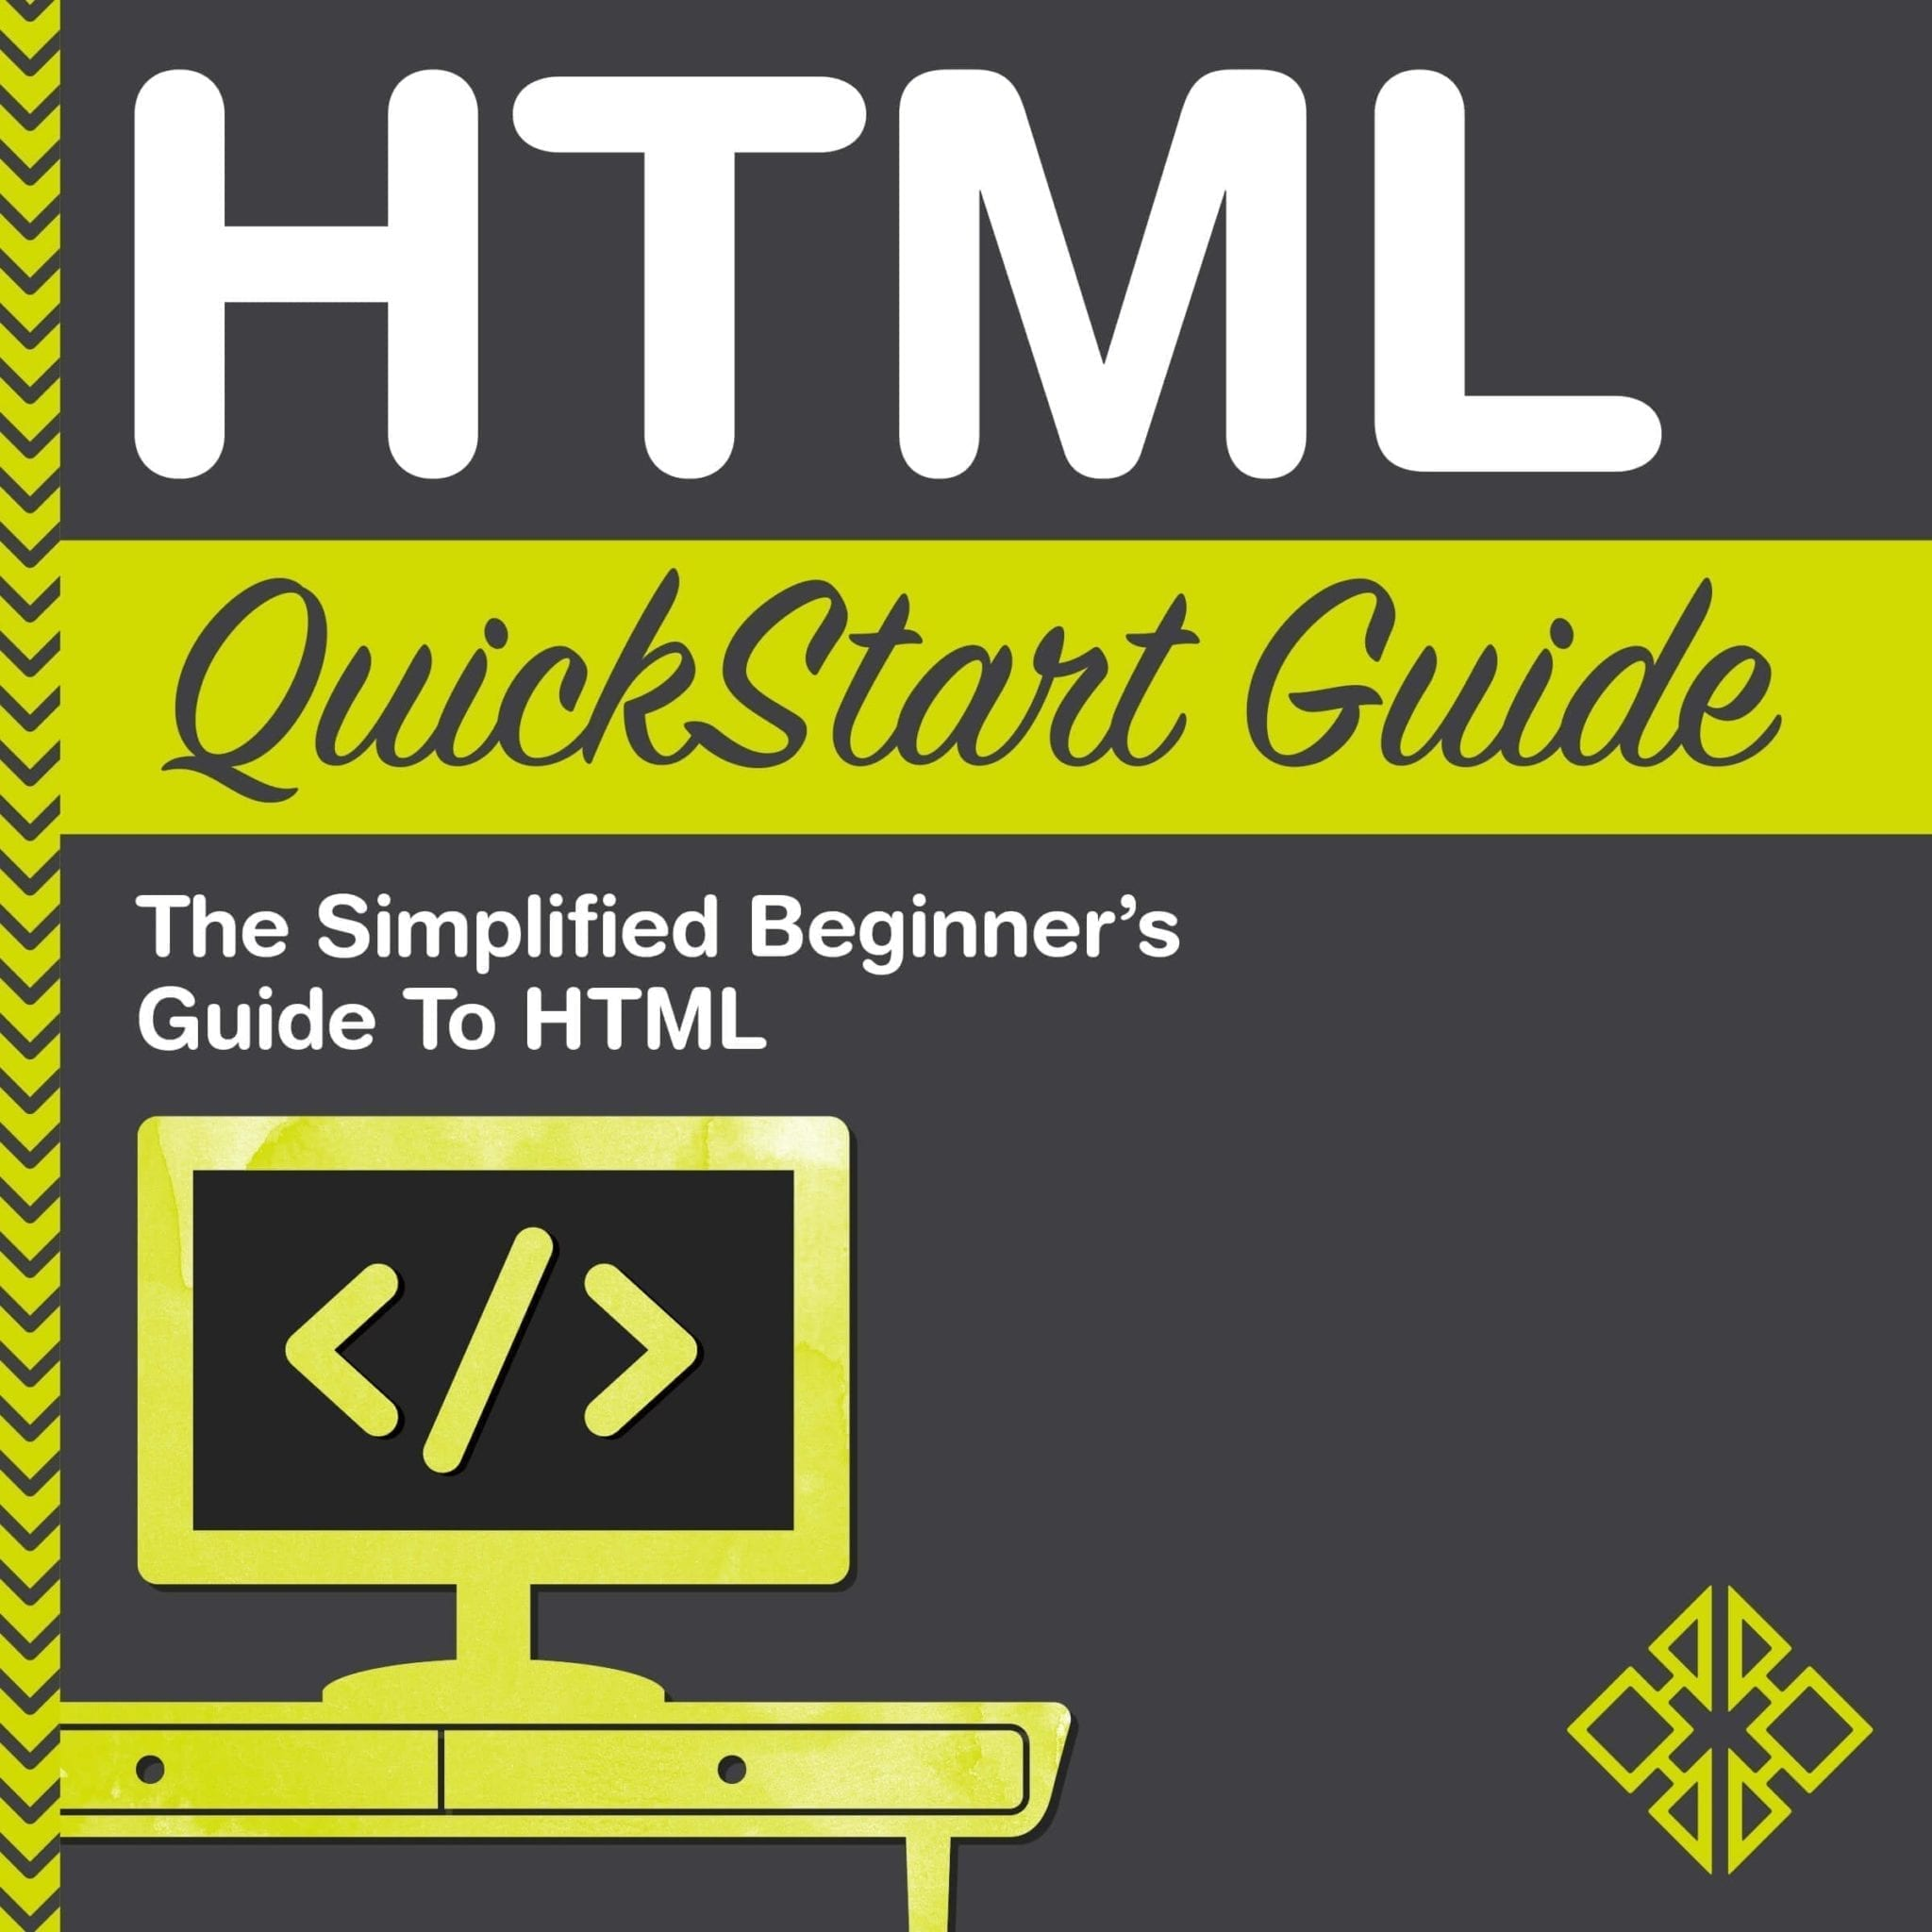 HTML QuickStart Guide - Available now from ClydeBank Media